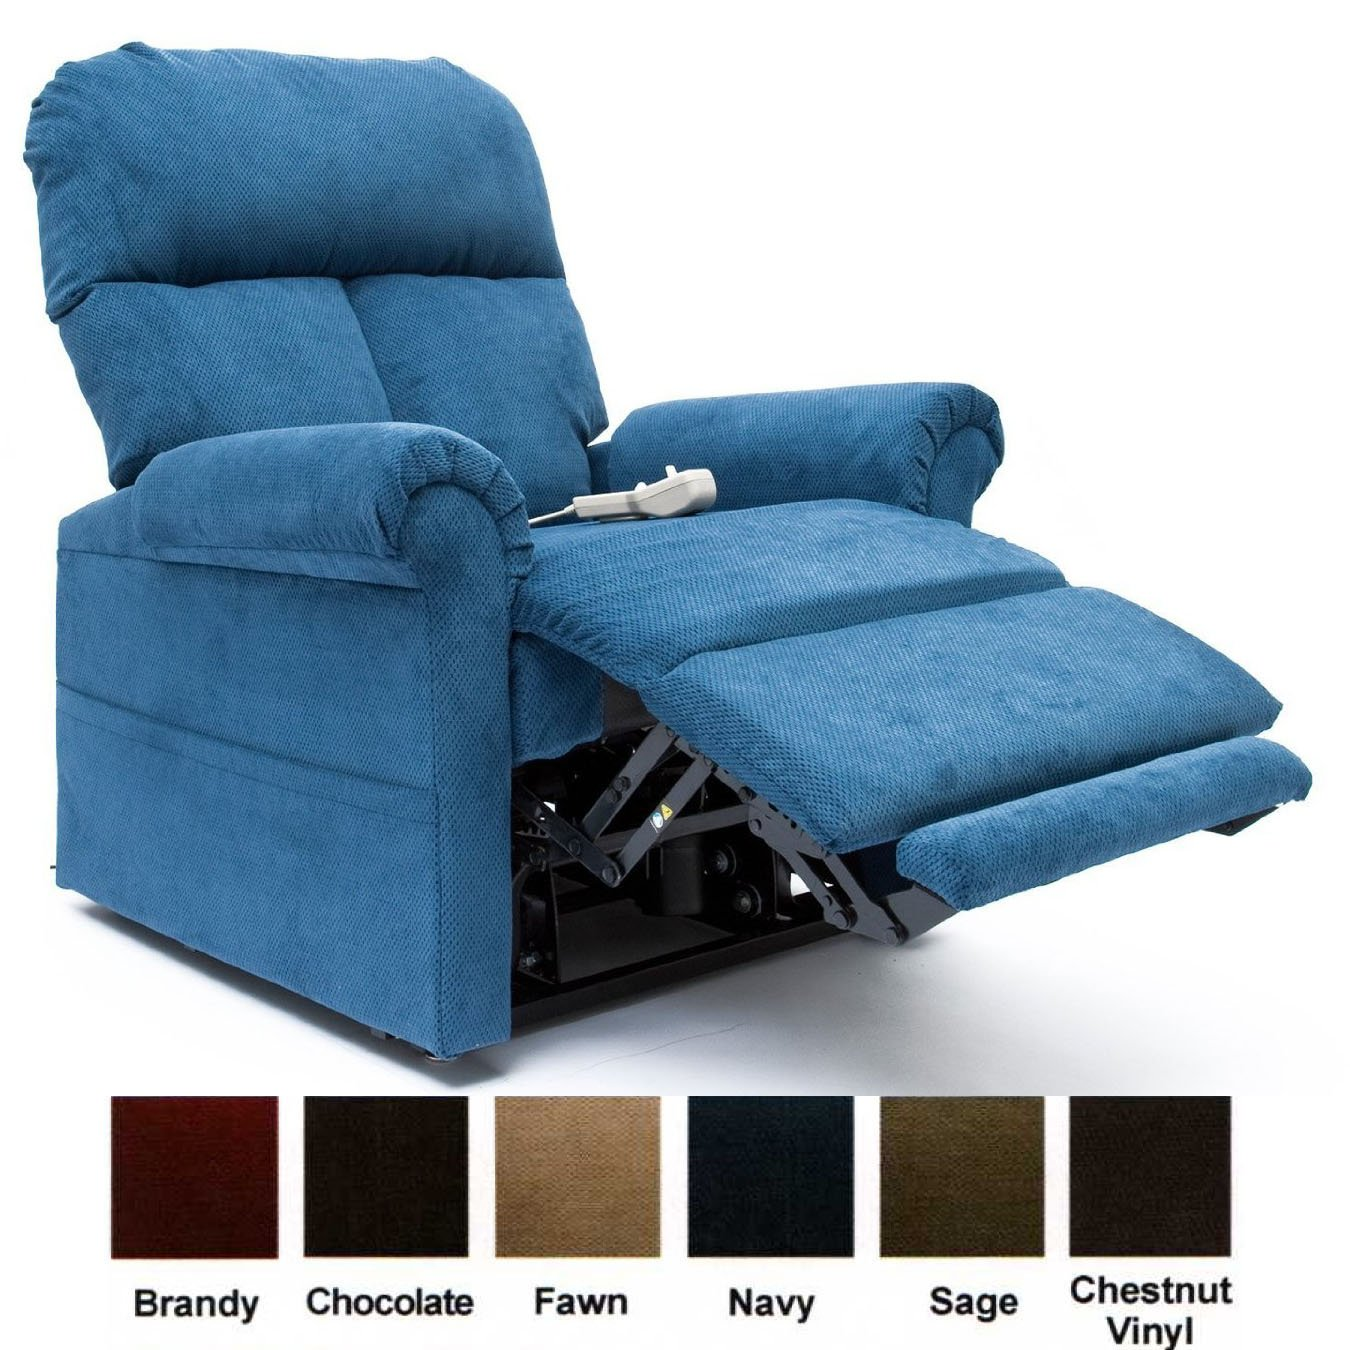 big man lift chair nook tables and chairs what 39s the best heavy duty recliners for men up to 500